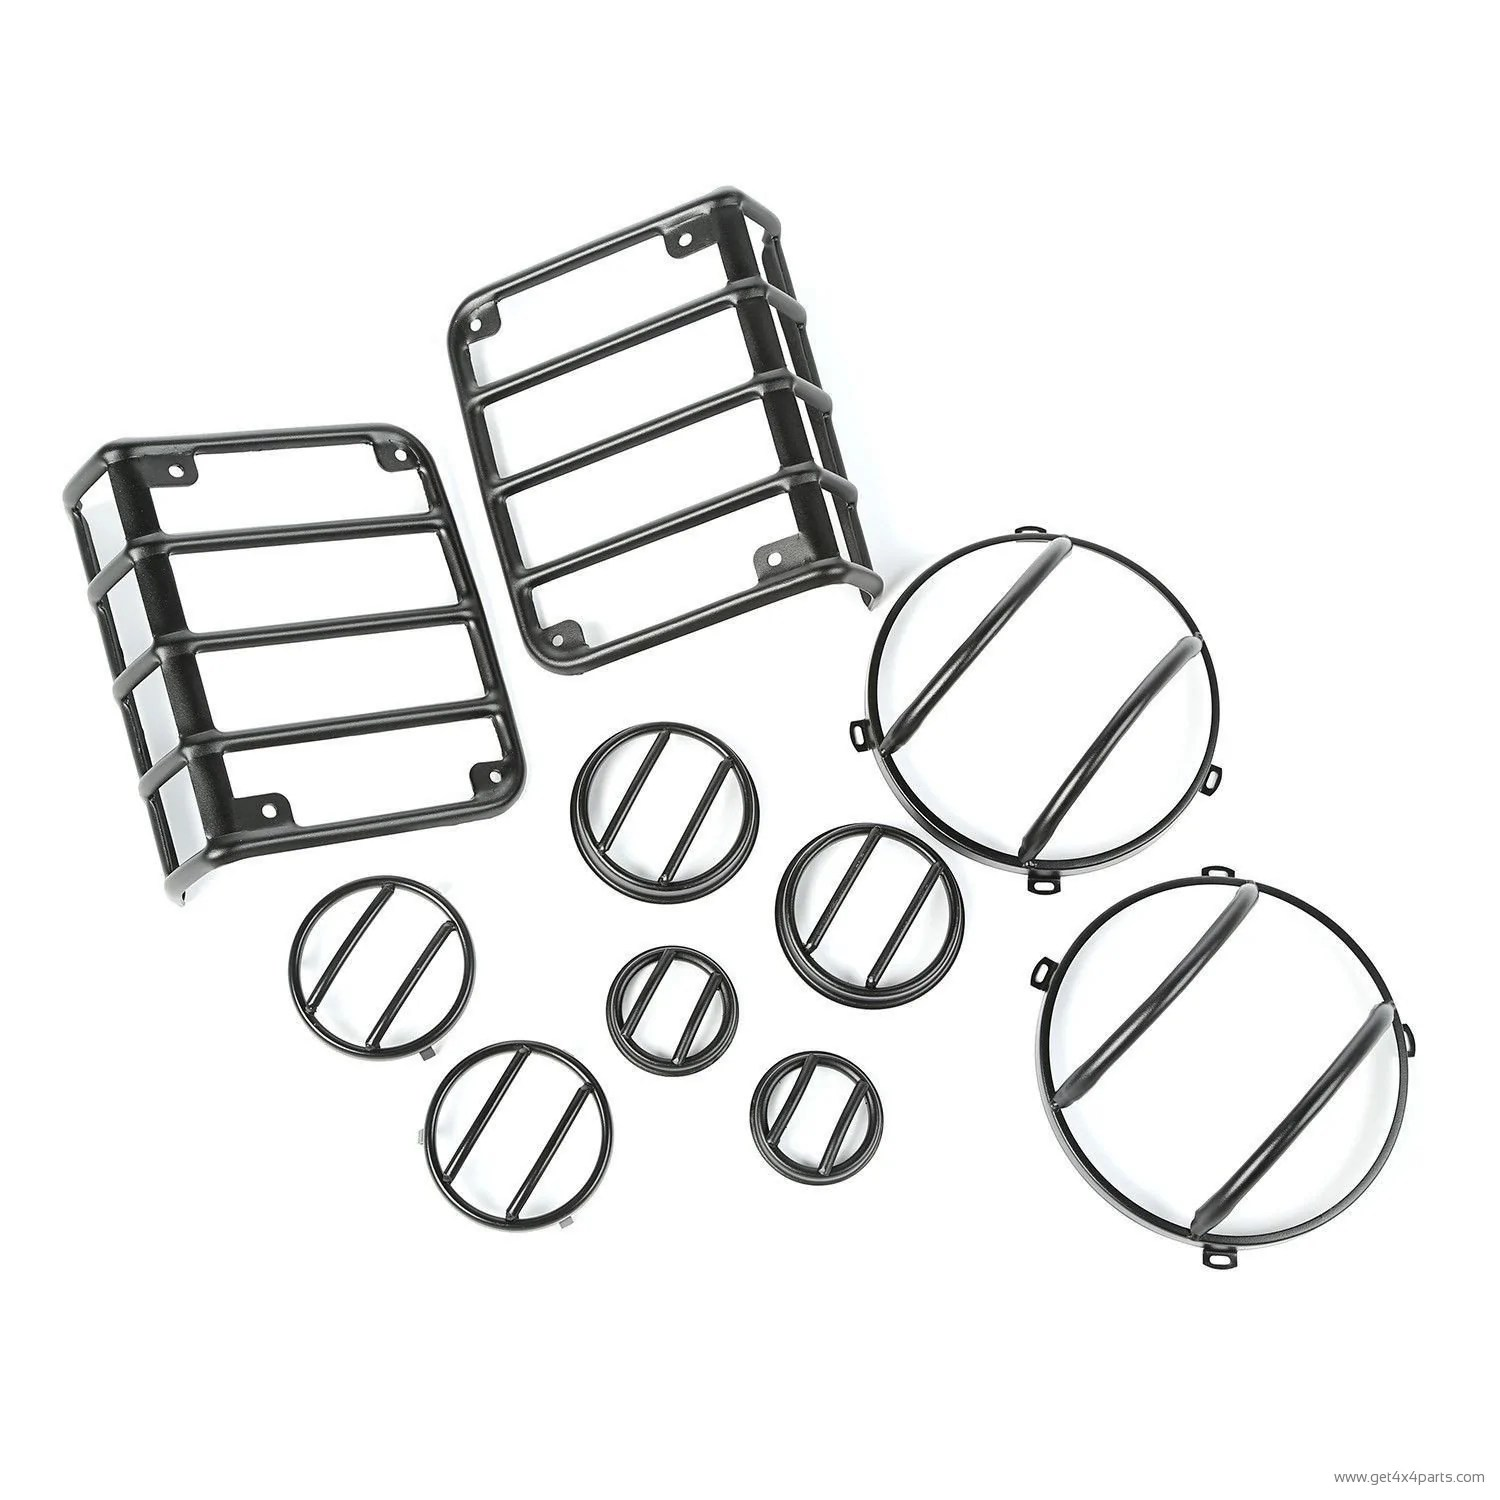 Shop for products at get4x4parts 010 shim 03 06 wrangler tj 04 06 wrangler unl lj 07 16 jeep wrangler 07 16 jeep wrangler jk 07 16 wrangler